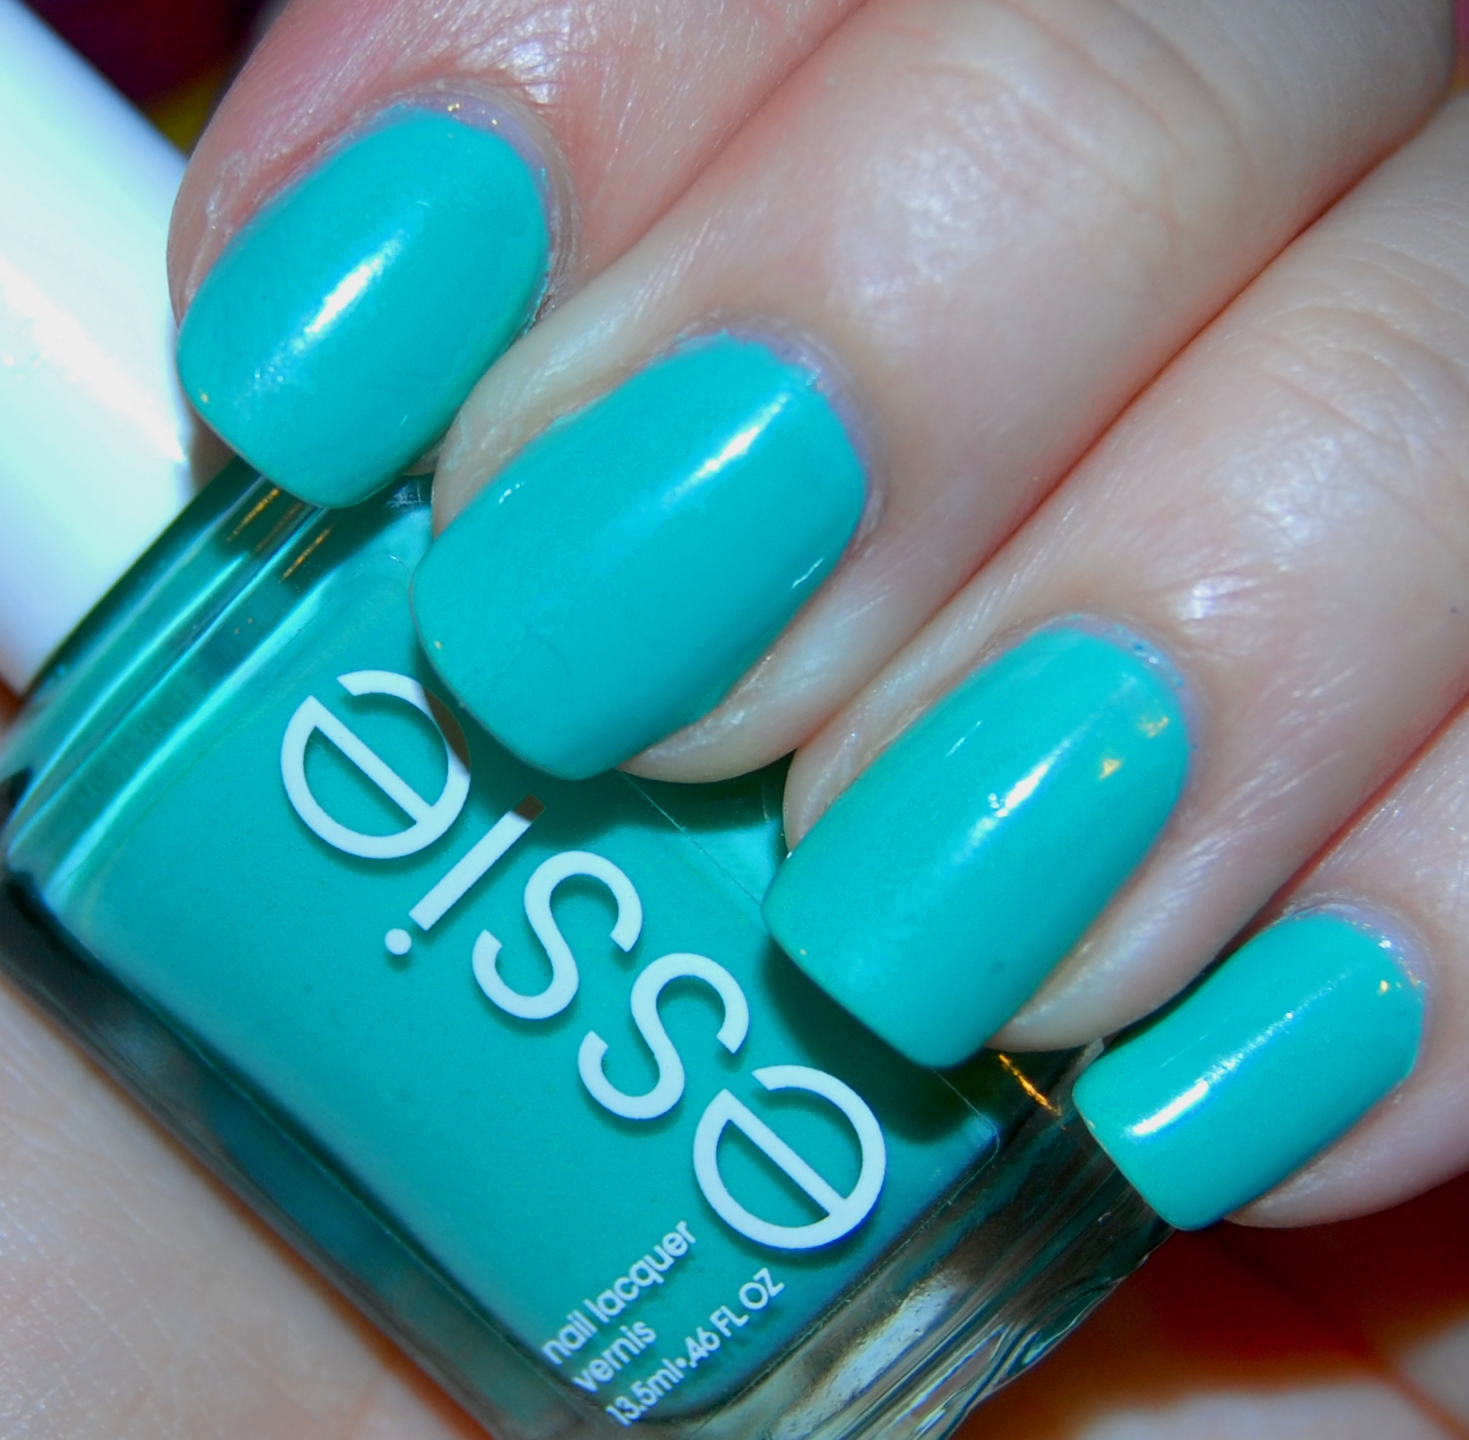 Mermaid Nails: Essie Turquoise & Caicos Nail Polish